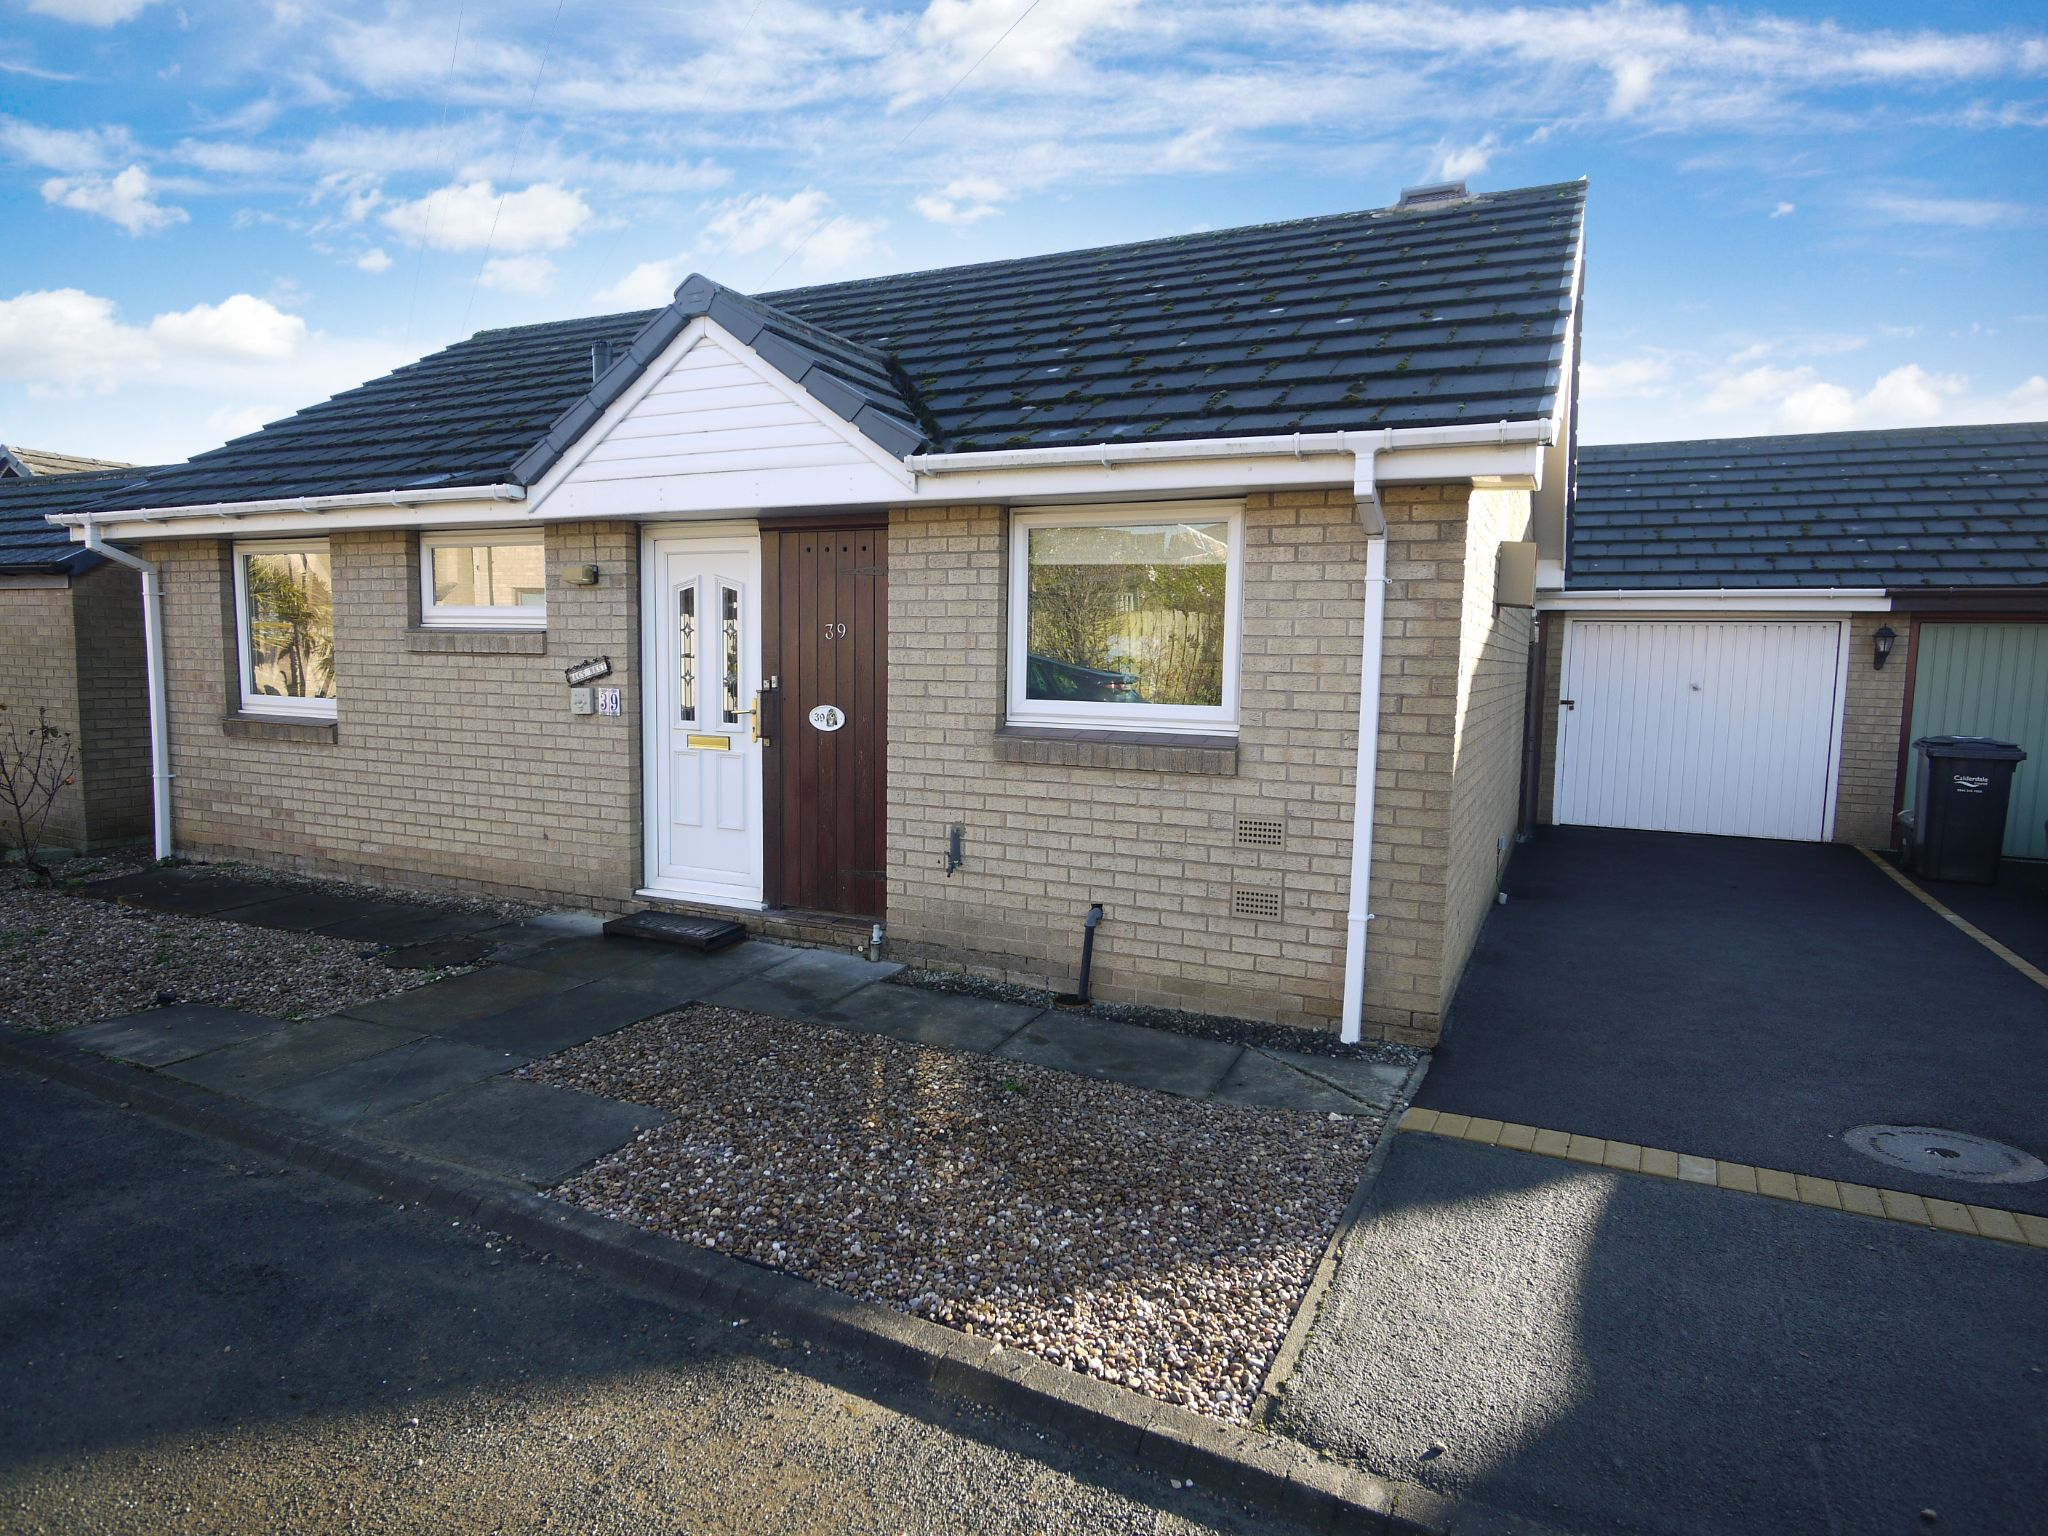 2 bedroom detached bungalow SSTC in Brighouse - Main.